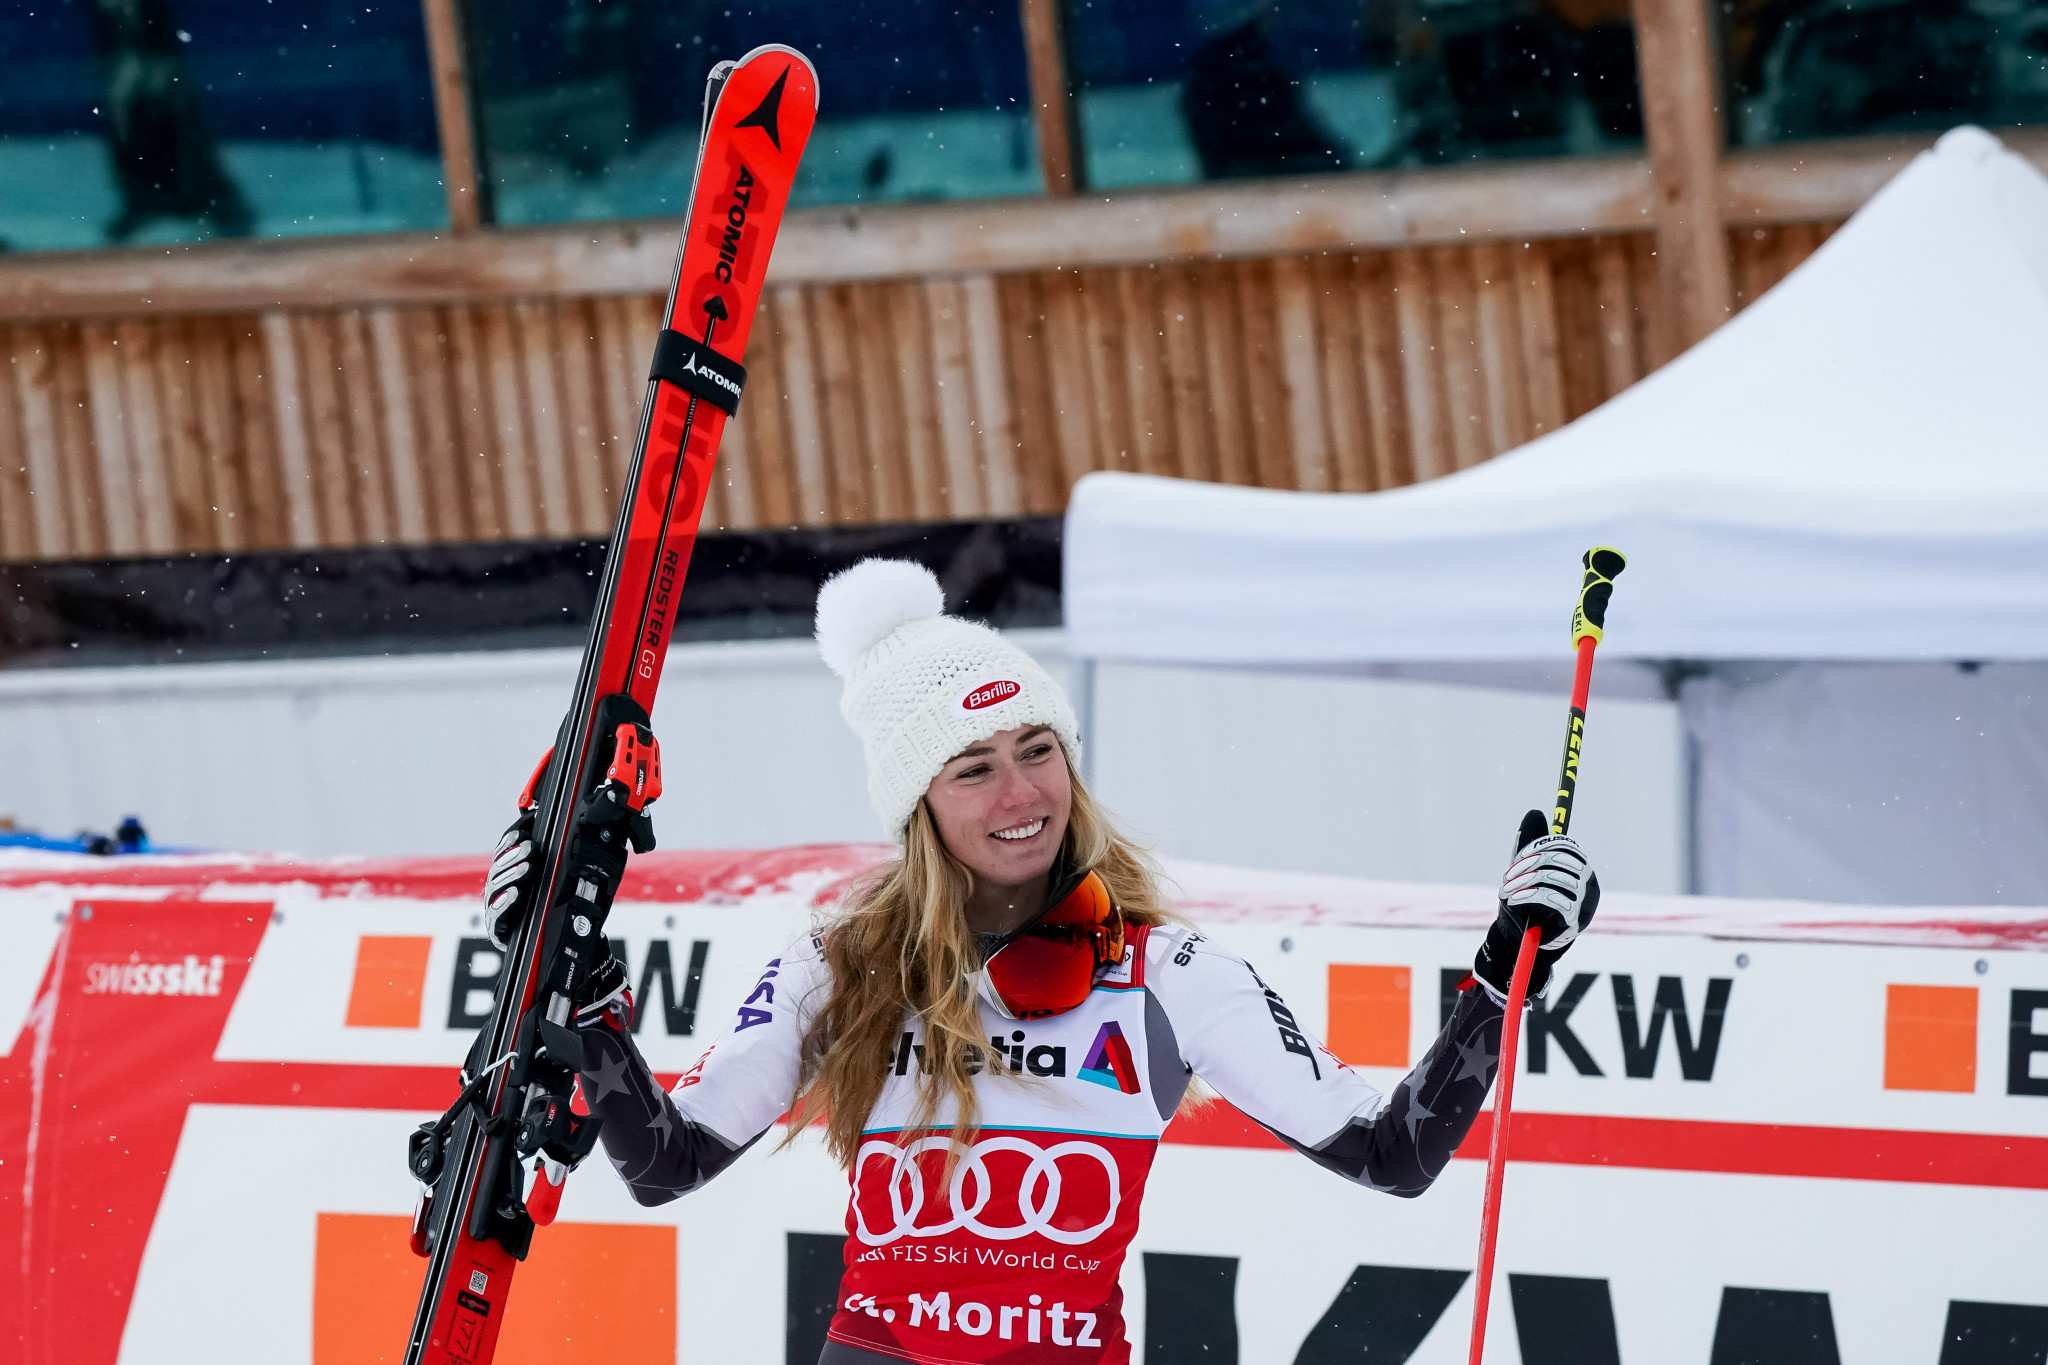 Mikaela Shiffrin claimed victory yet again today in the parallel slalom at the FIS Alpine Ski World Cup event in St Moritz ©Getty Images